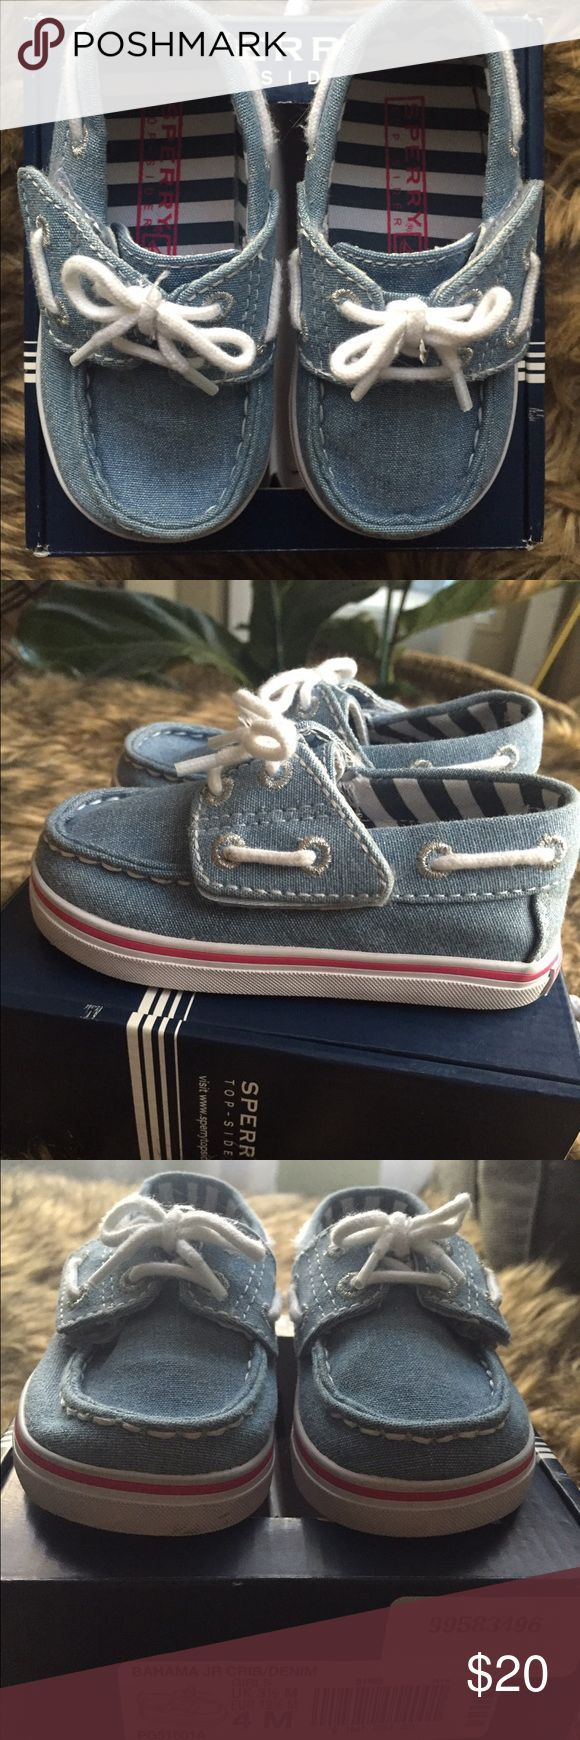 Sperry Top-Sider Bahama Jr. Crib Shoe - Denim Baby Sperry Top-Sider Bahama Jr. Crib Shoe in Denim with pink accents. Never worn, comes with box. Sperry Top-Sider Shoes Baby & Walker